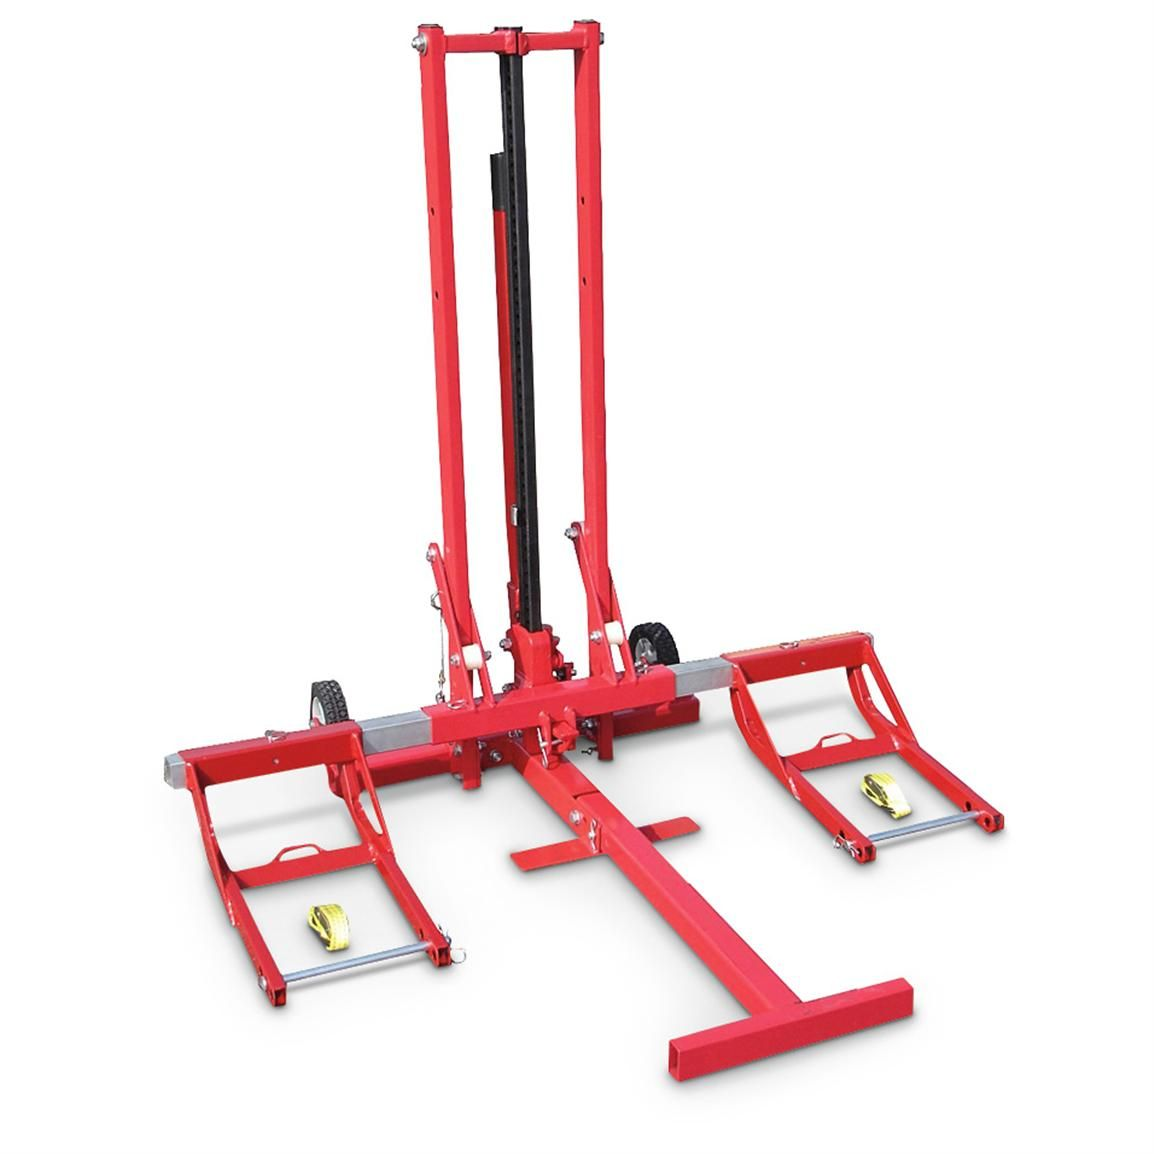 Sensational Lawn Mower Lift And Farm Mechanical Jack Tools In 2019 Home Interior And Landscaping Ymoonbapapsignezvosmurscom